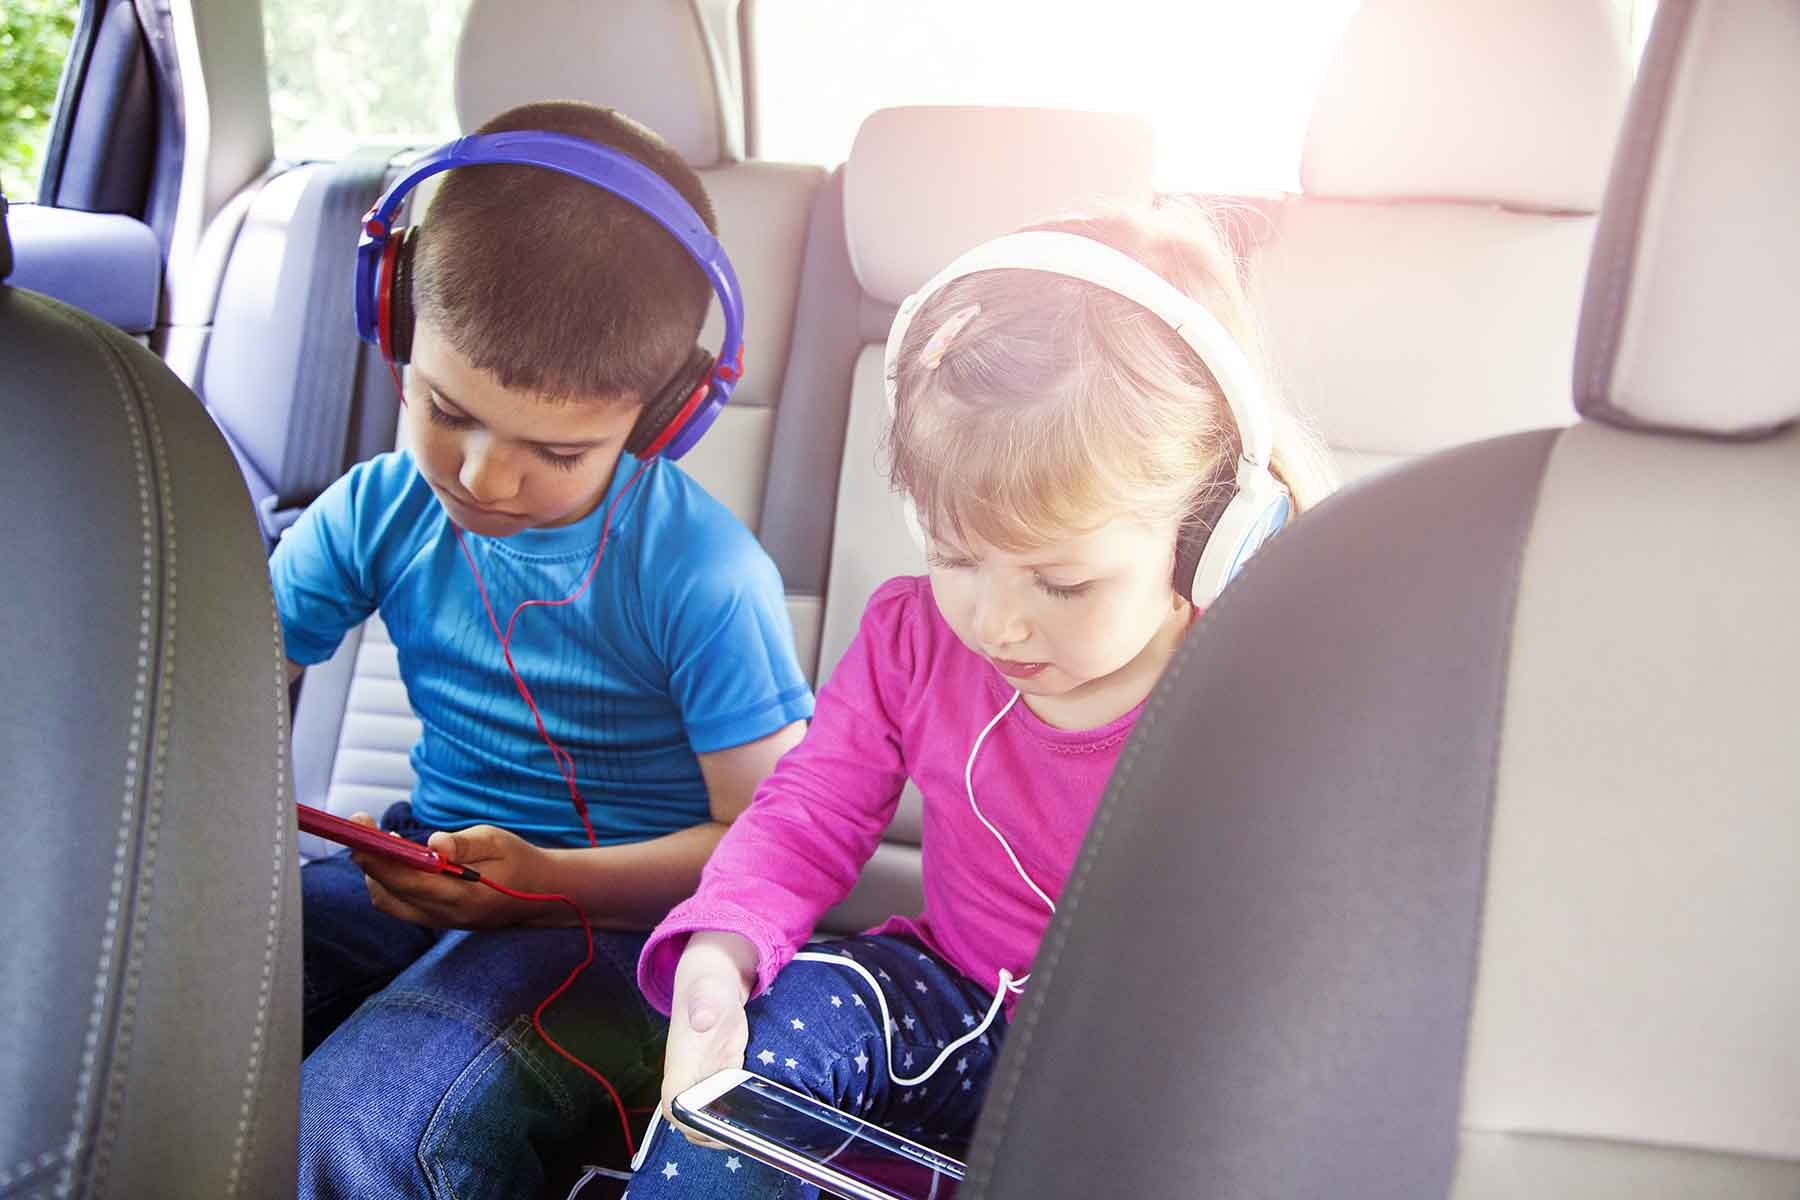 Kids playing games in the car